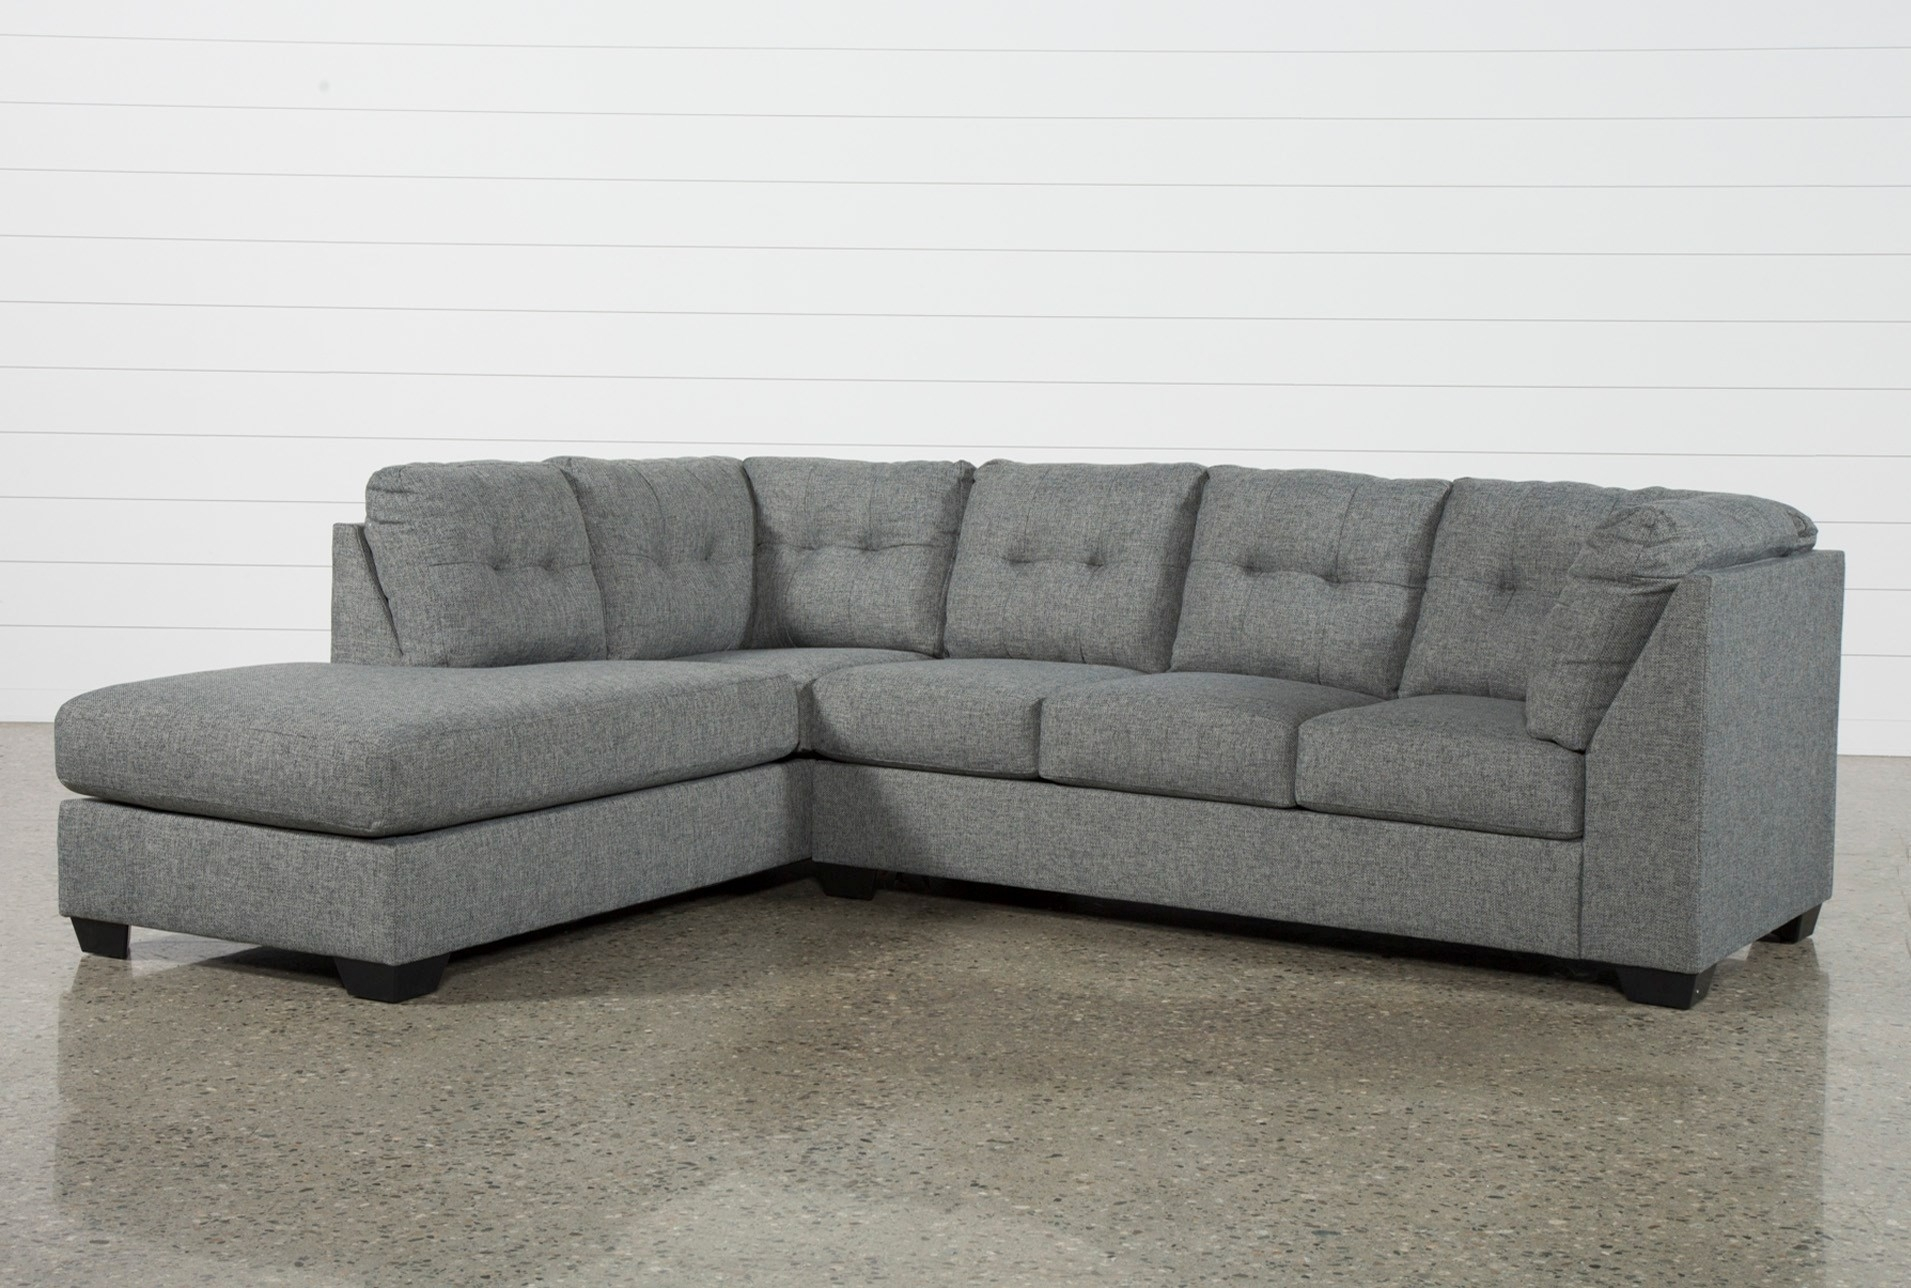 2 Piece Sectional Lucy Grey W Laf Chaise Living Spaces 225935 Fabric With Regard To Lucy Grey 2 Piece Sectionals With Raf Chaise (Image 1 of 25)